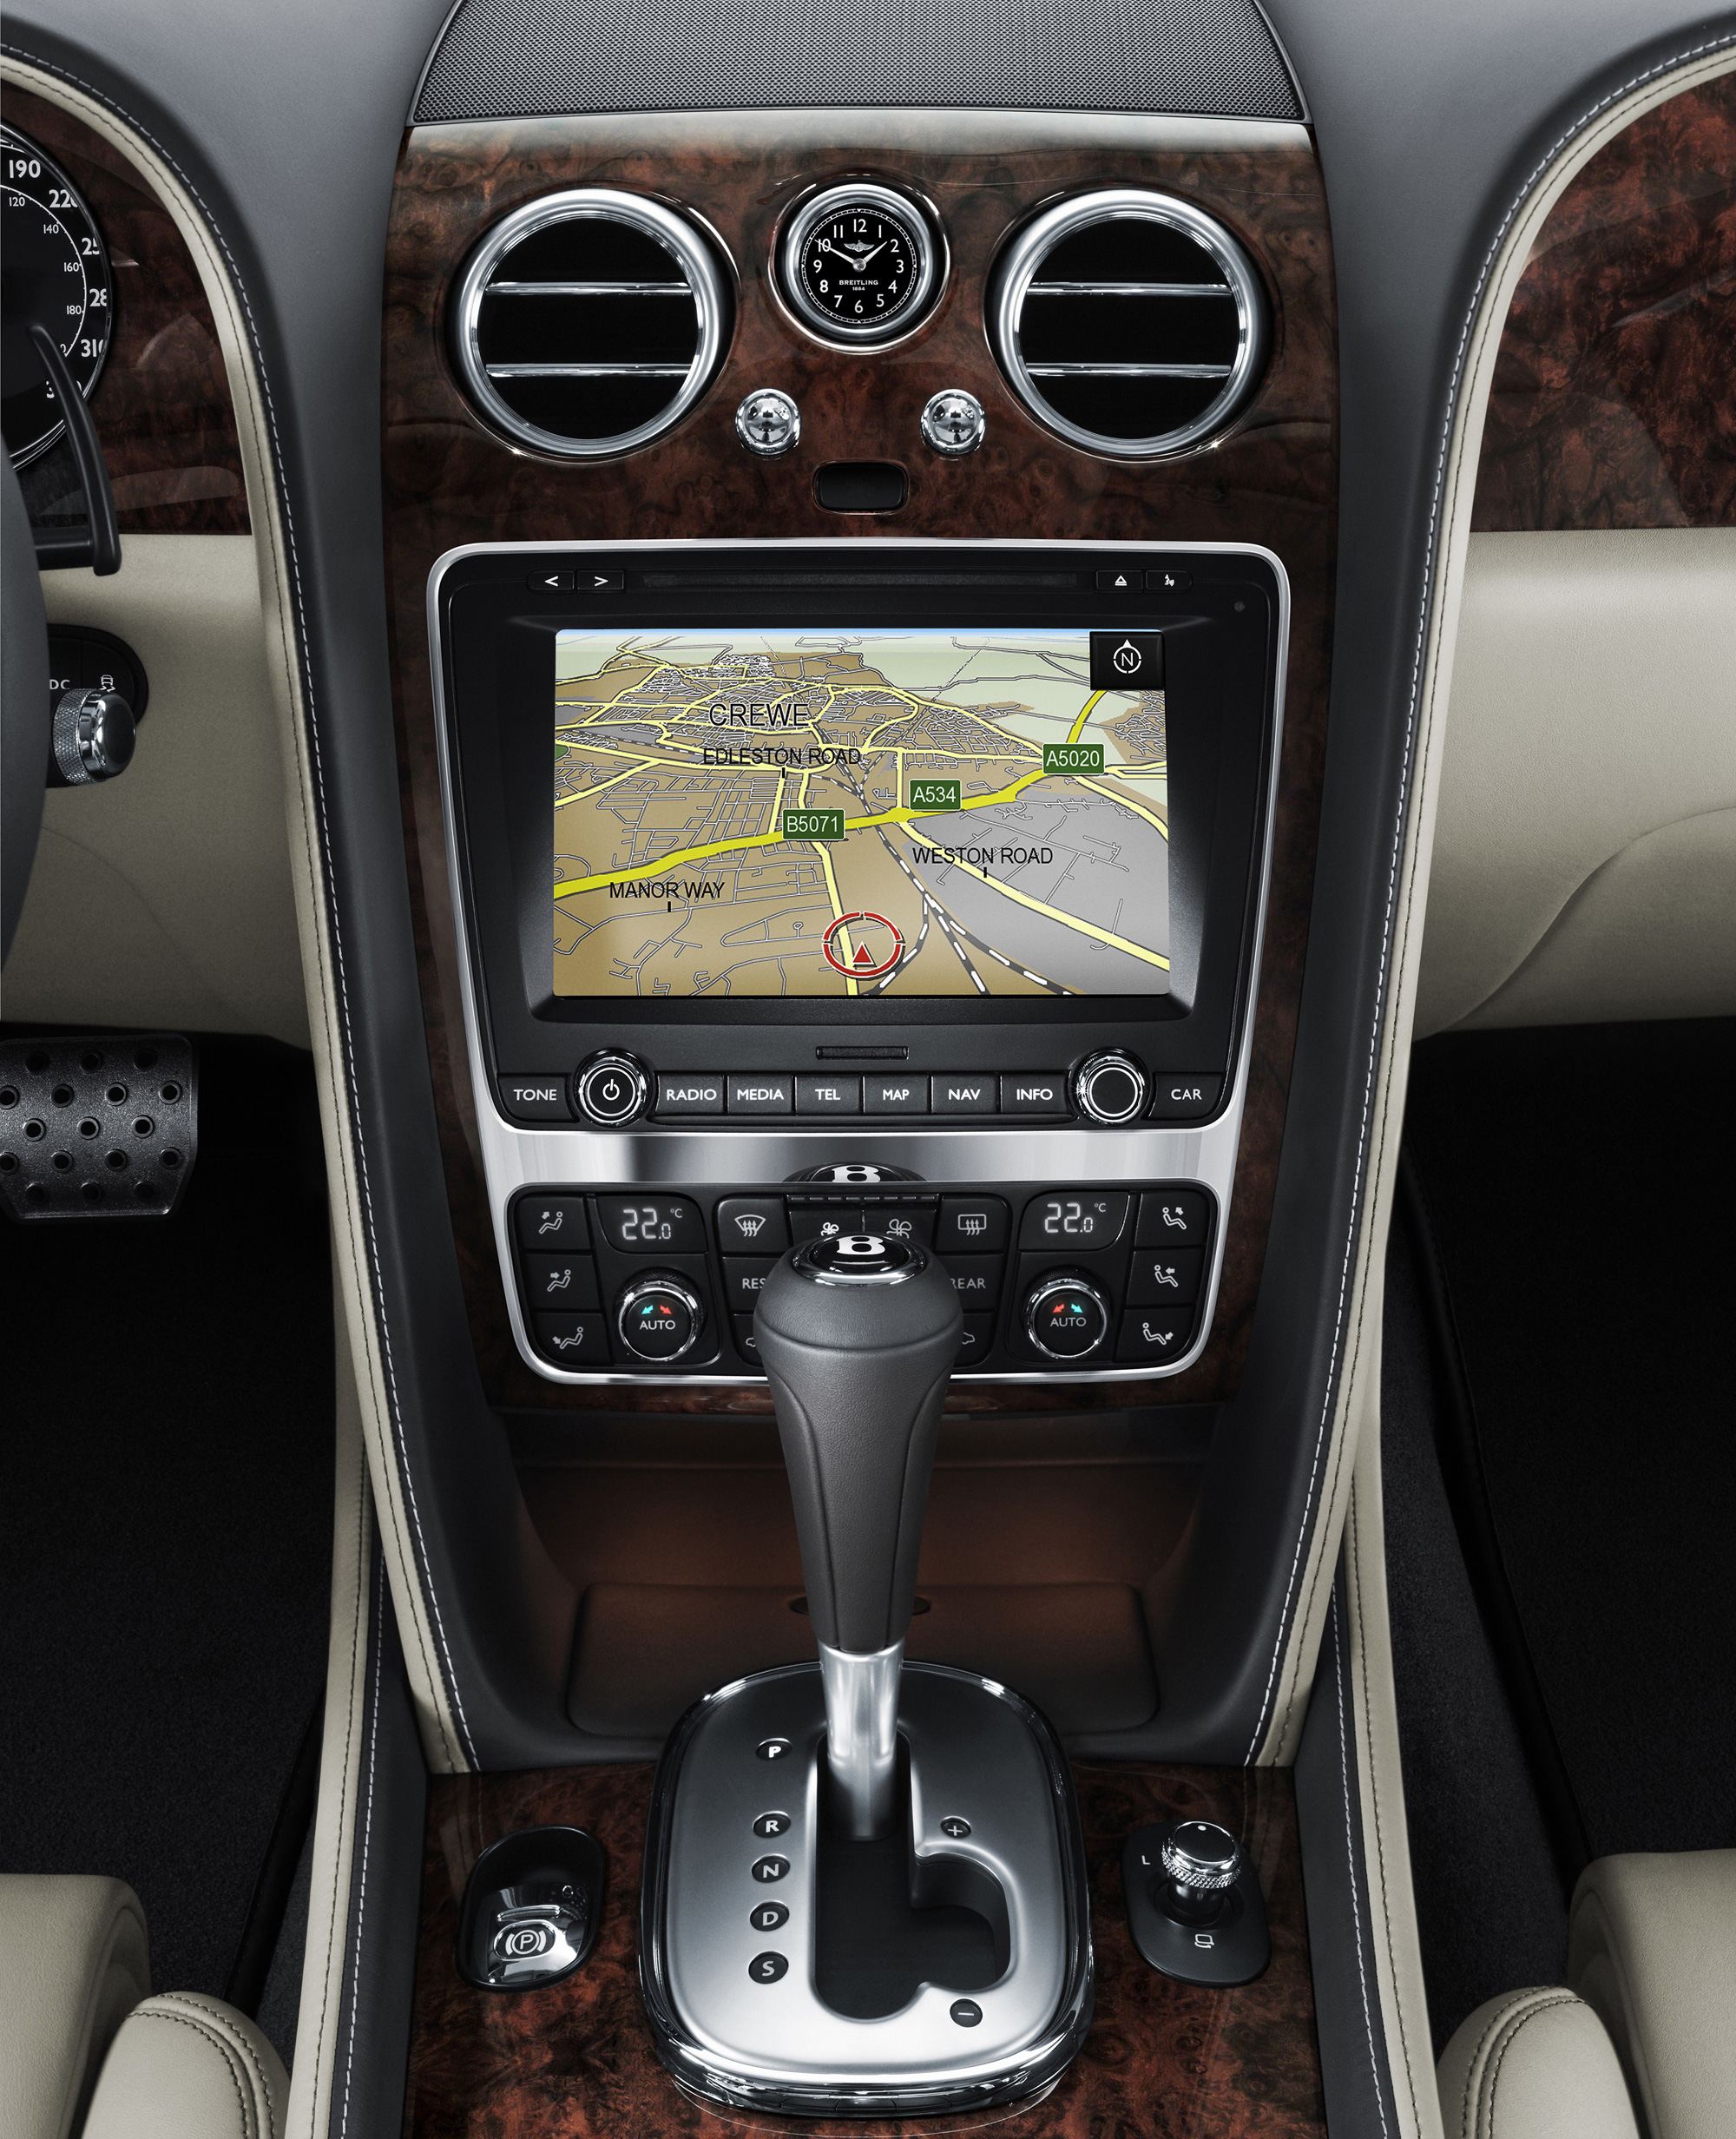 The New Bentley Continental Gt In Platinum: The New Bentley Continental GT Four Seat Coupe